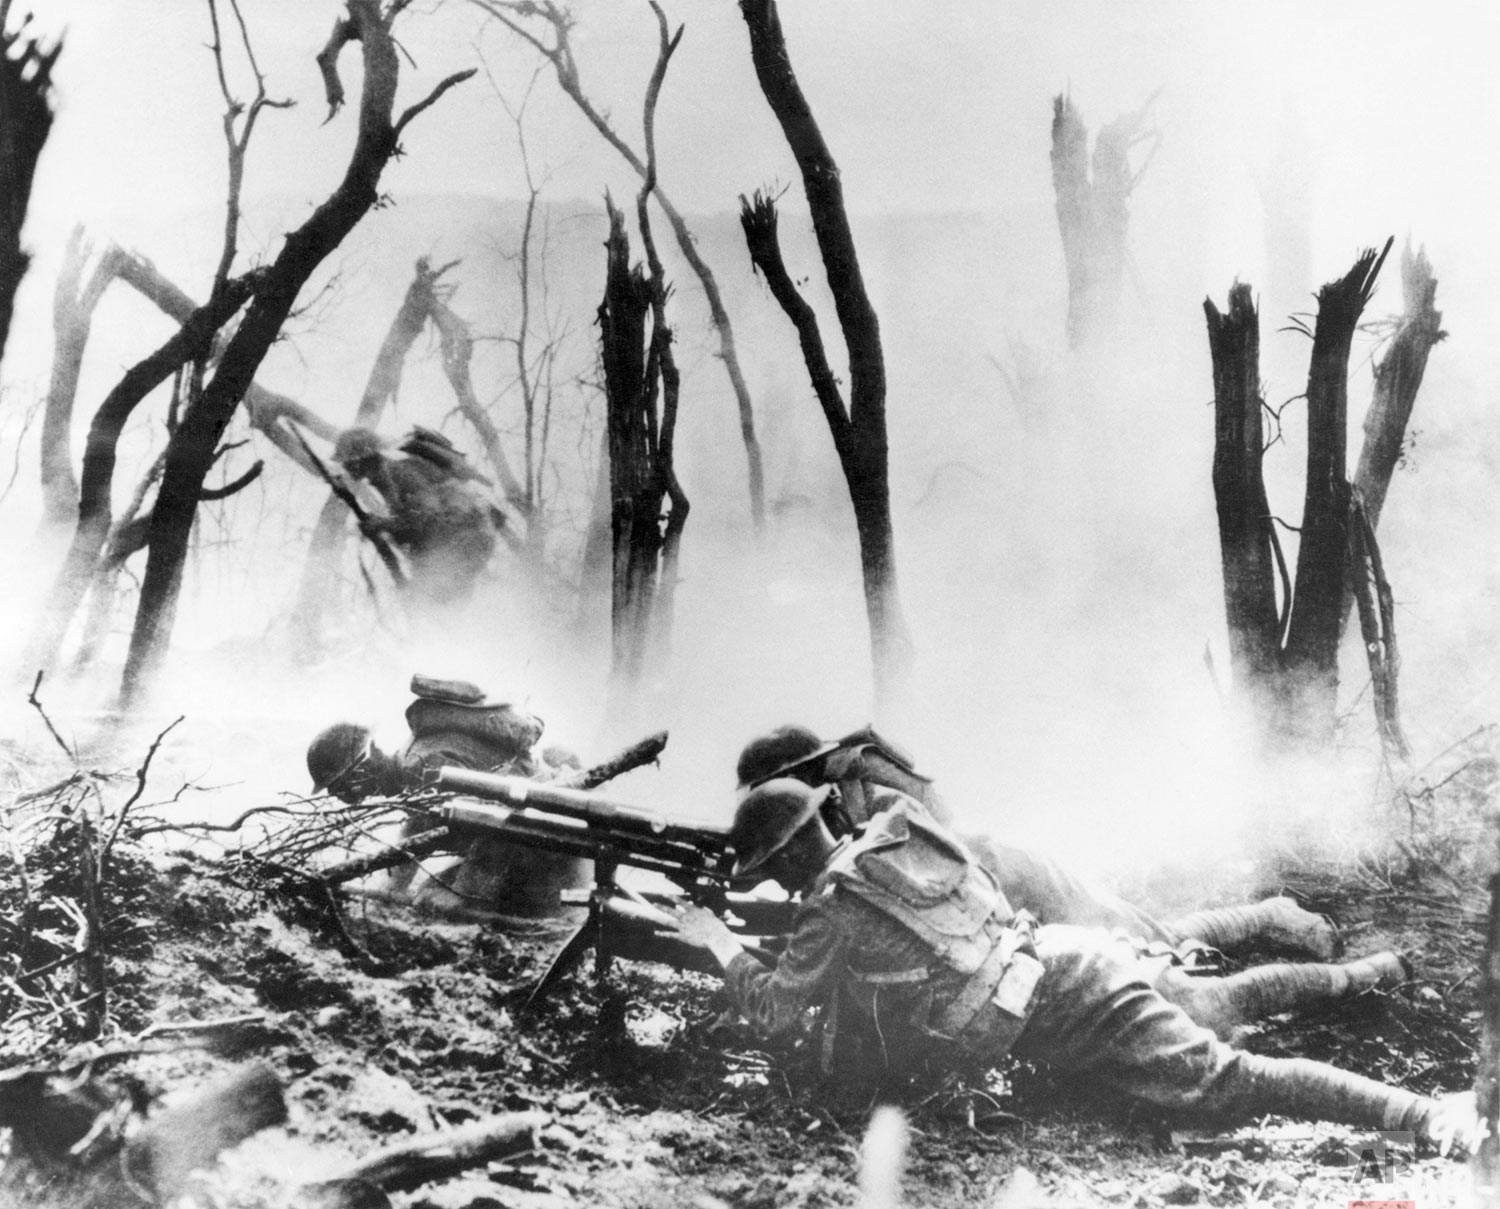 In this Sept. 26, 1918 file photo, a U.S .Army 37-mm gun crew man their position during the World War One Meuse-Argonne Allied offensive in France. (AP Photo)